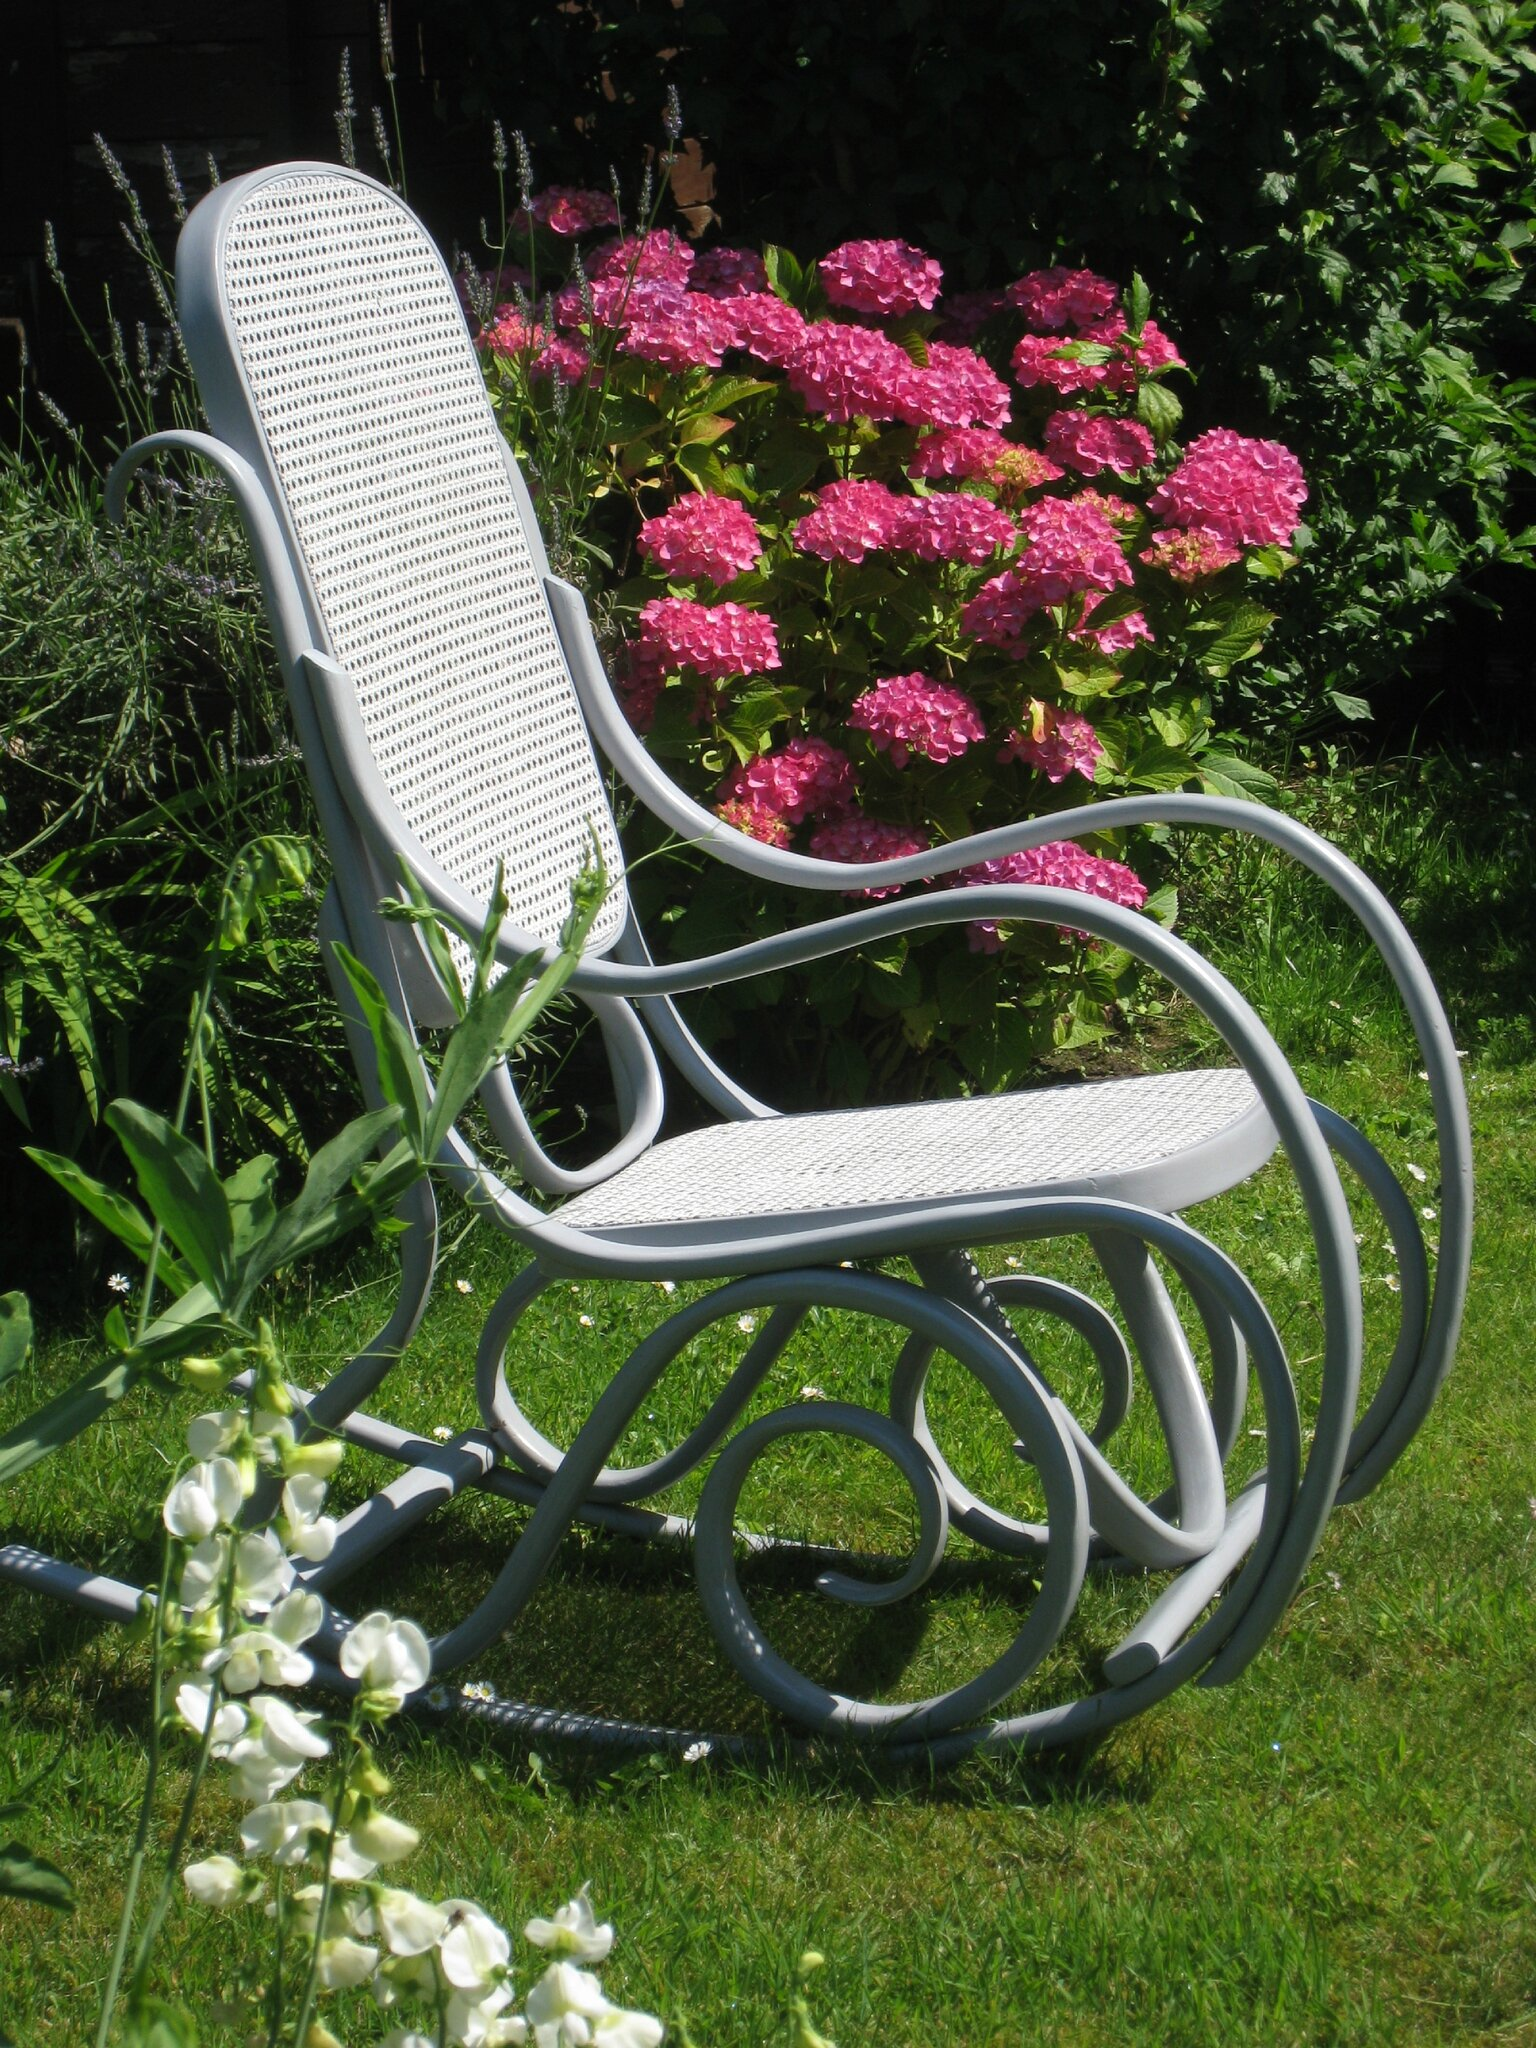 Rocking-chair in the garden